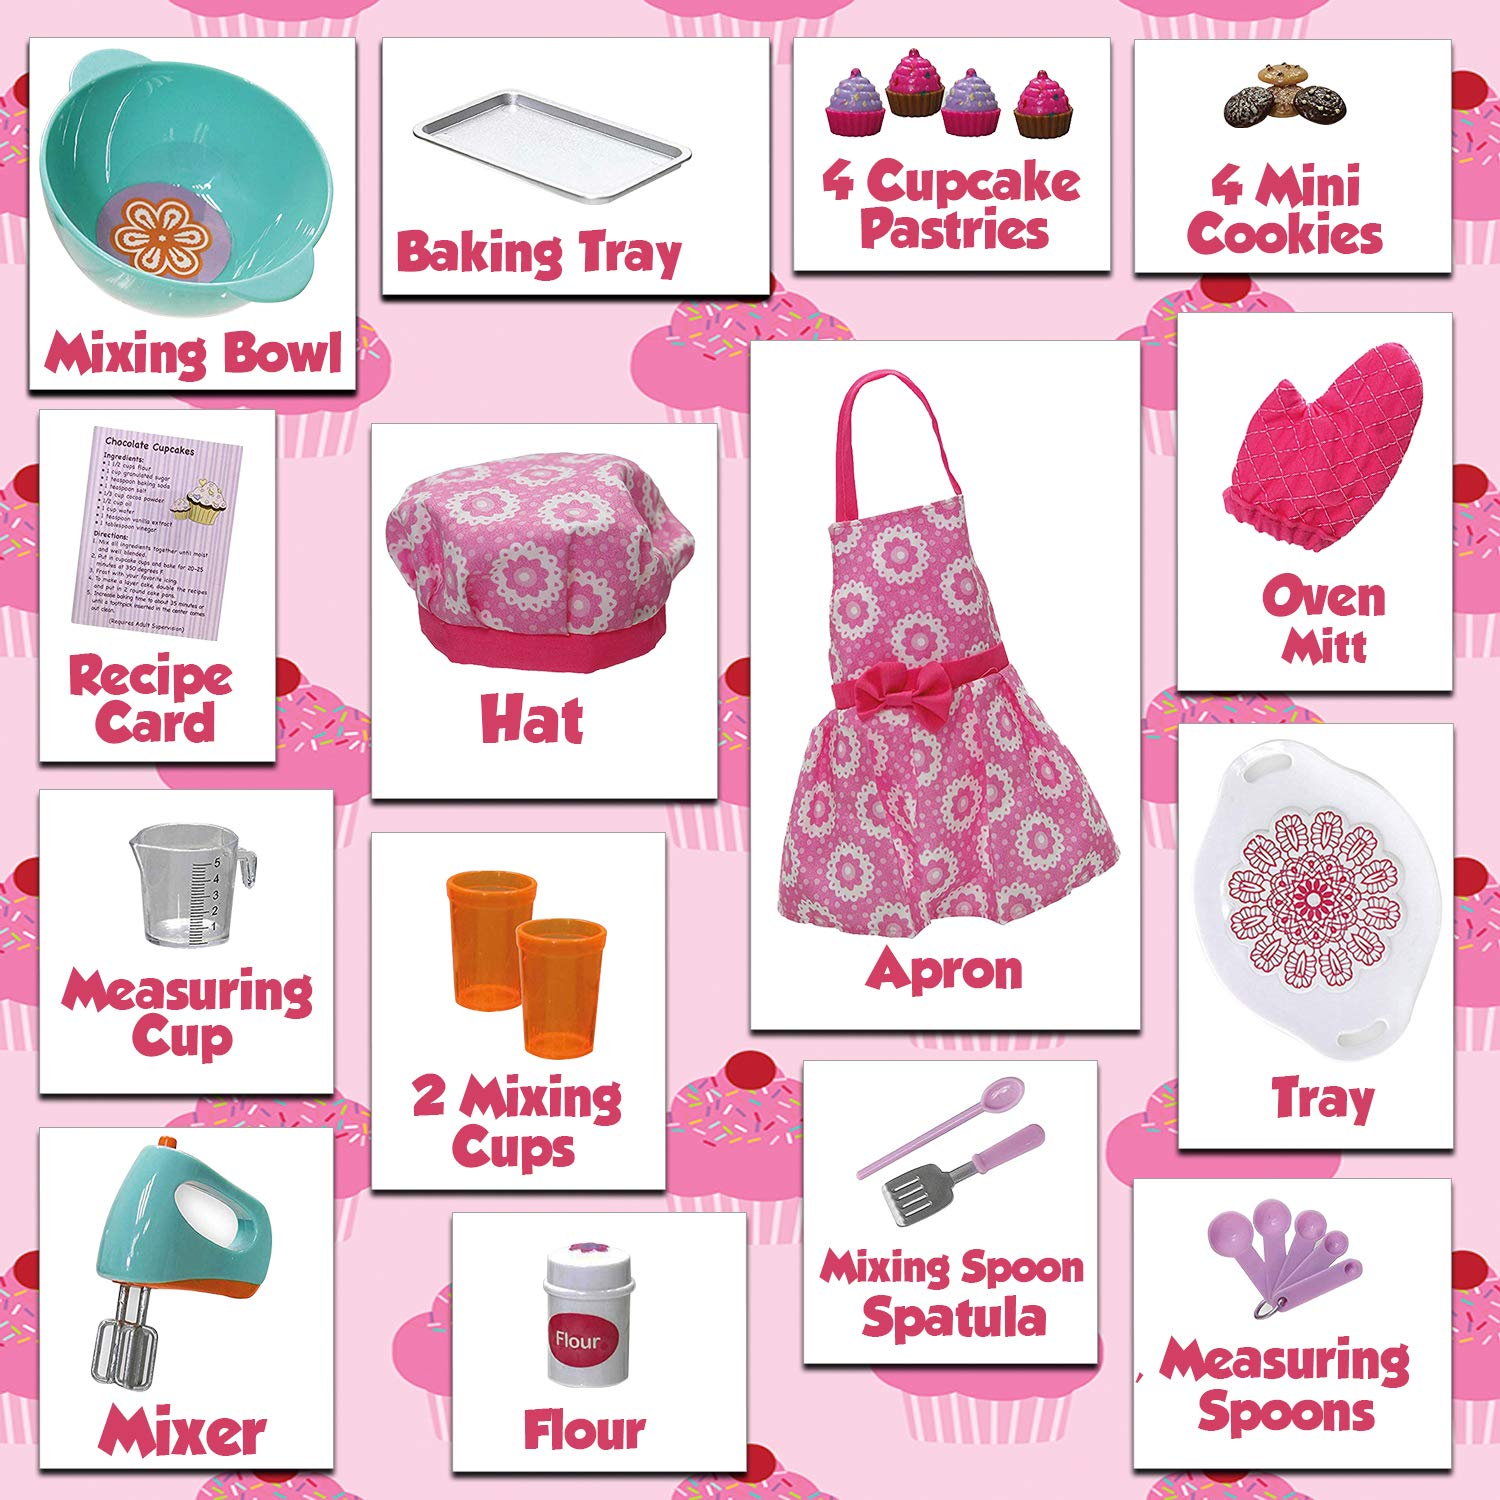 Baking and Cooking Utensils Set Beverly Hills Doll Baking Accessories Set 20 Piece Baking Set with Apron and Play Food Oven Mitt Fits 18 Inch American Girl Doll